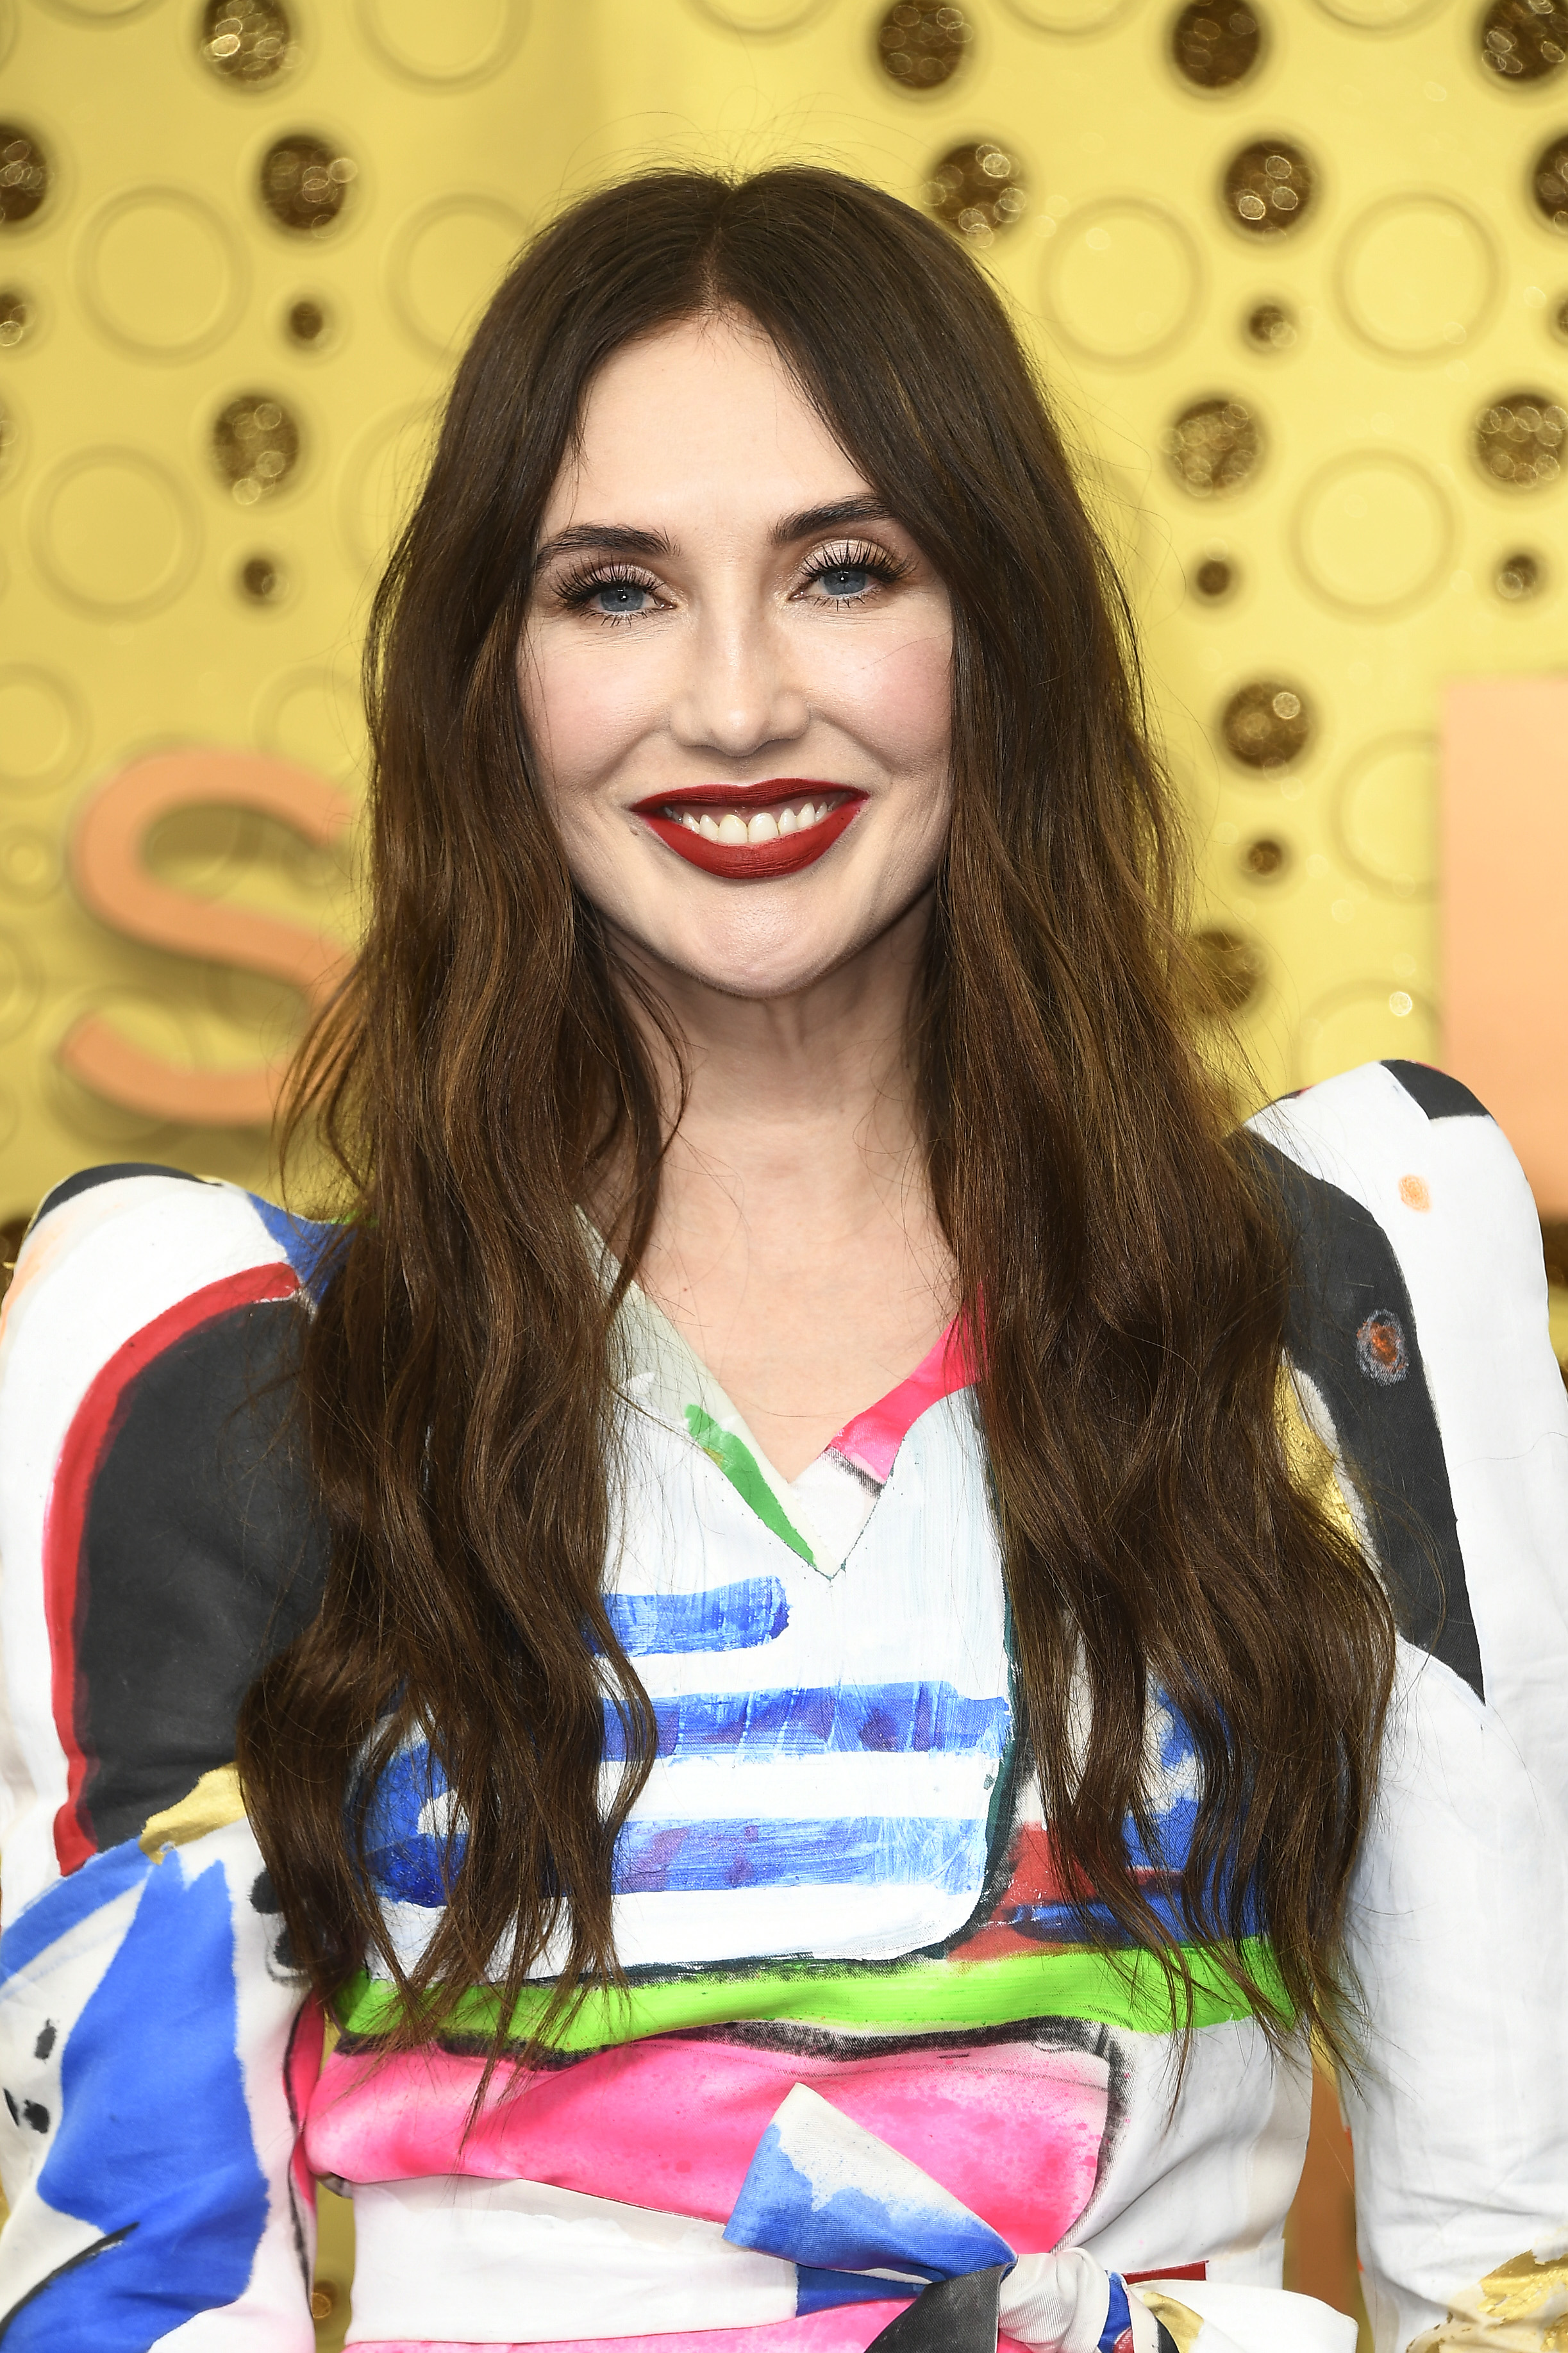 Carice van Houten on Game of Thrones finale: The silliness of who's going to be king was very smart